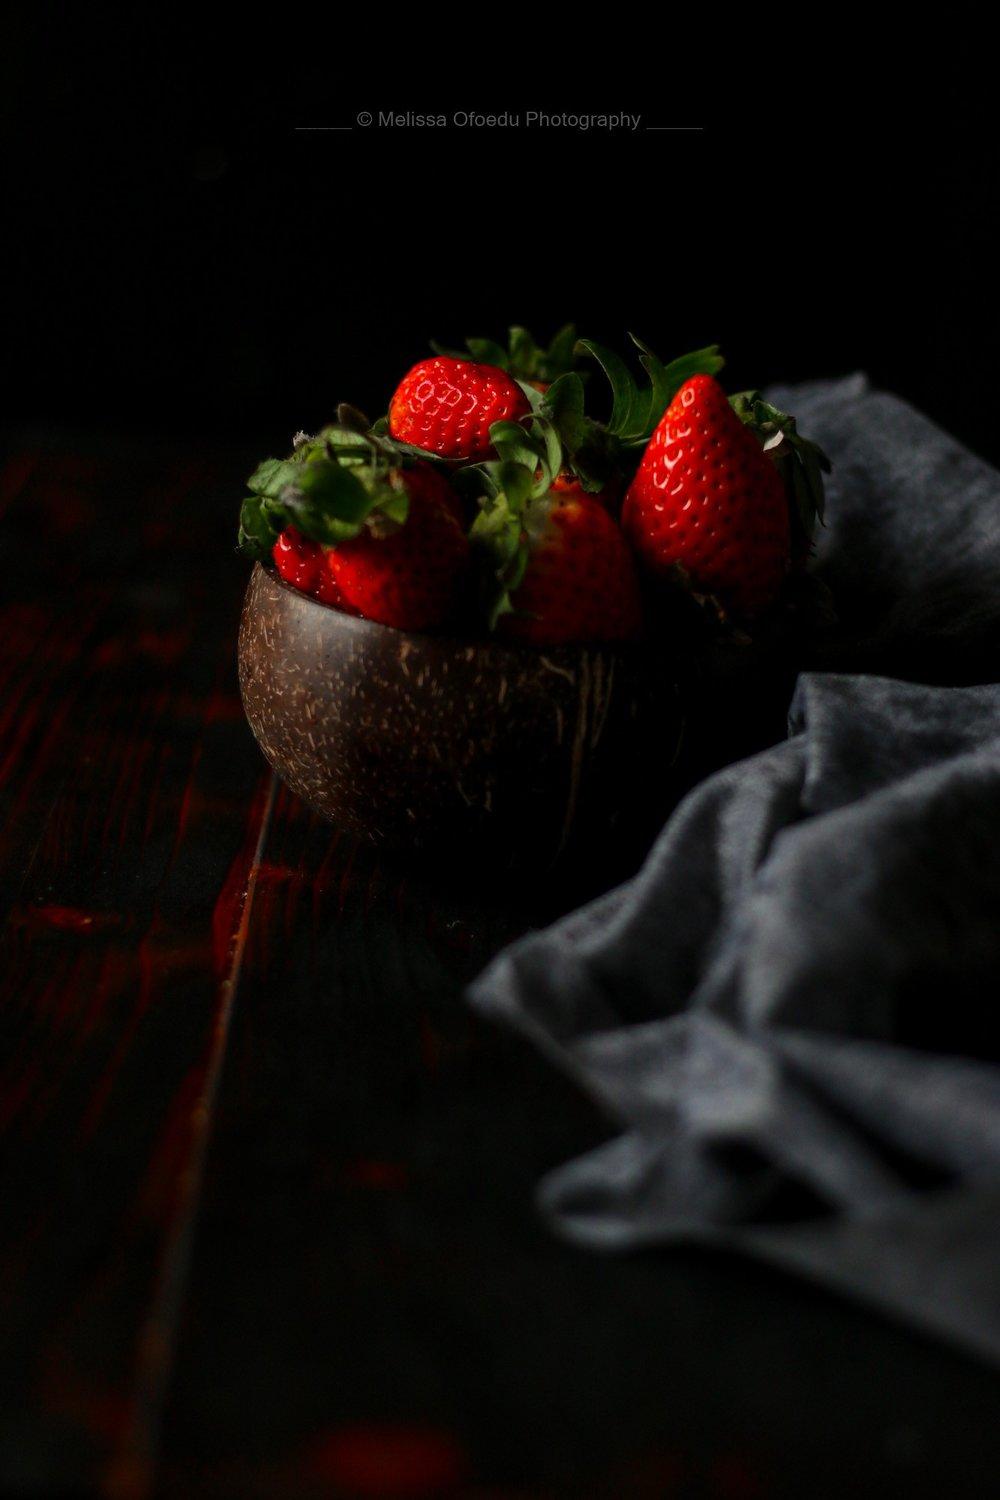 Strawberries-by-Melissa-Ofoedu-for-A-Sweet-Point-of-View-1.jpg